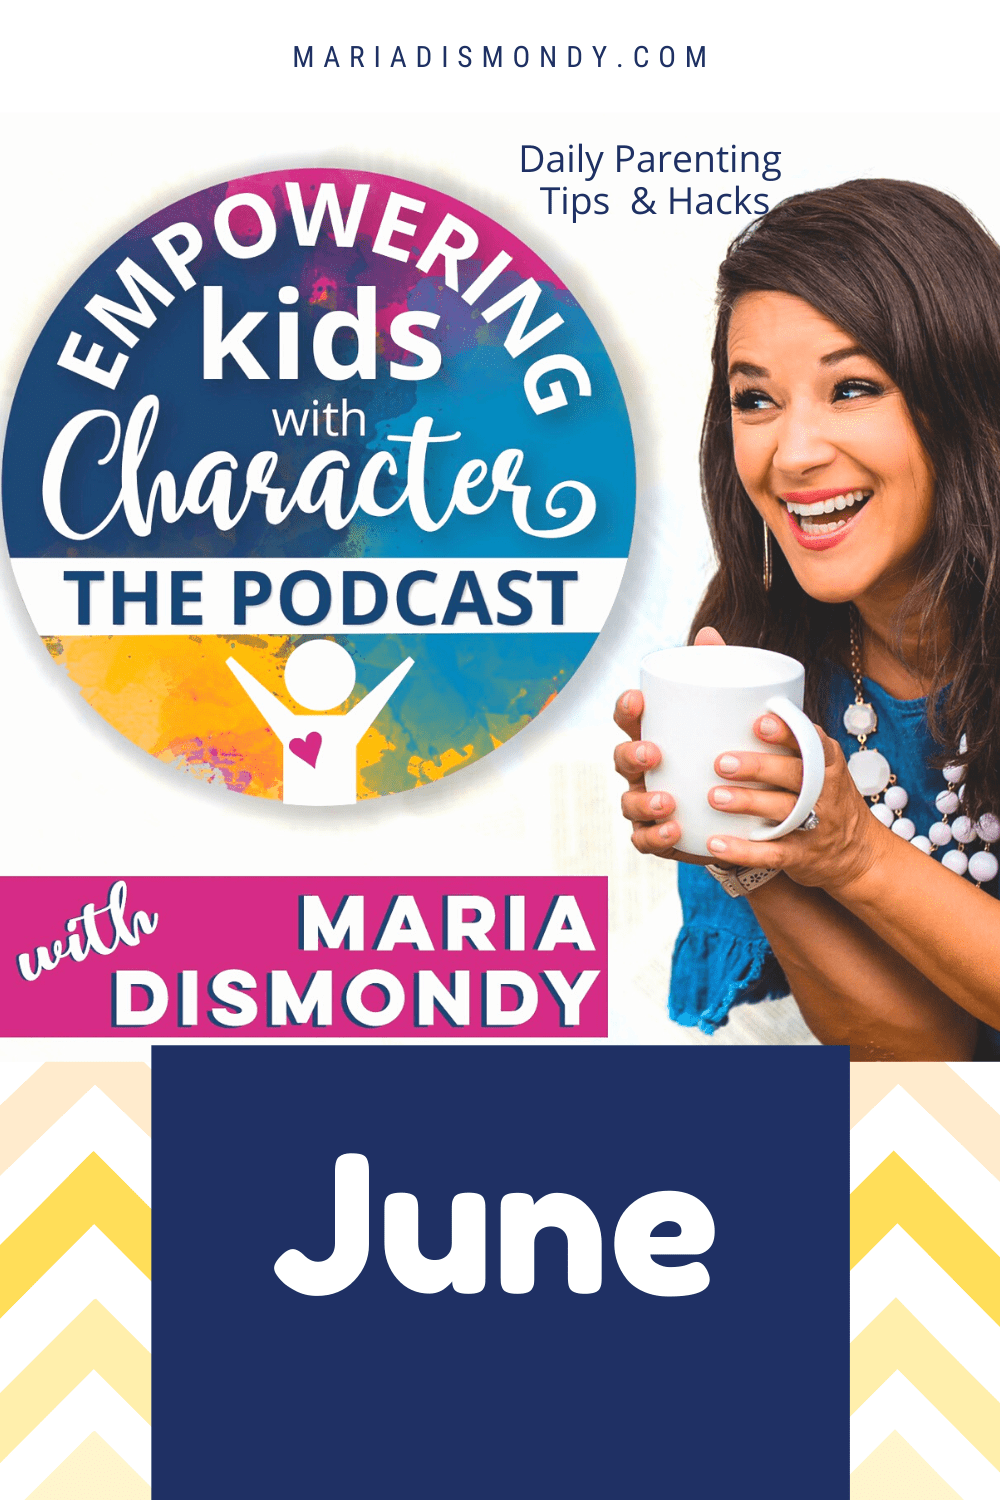 EKWC The Podcast-Daily Parenting Tips & Hacks-June